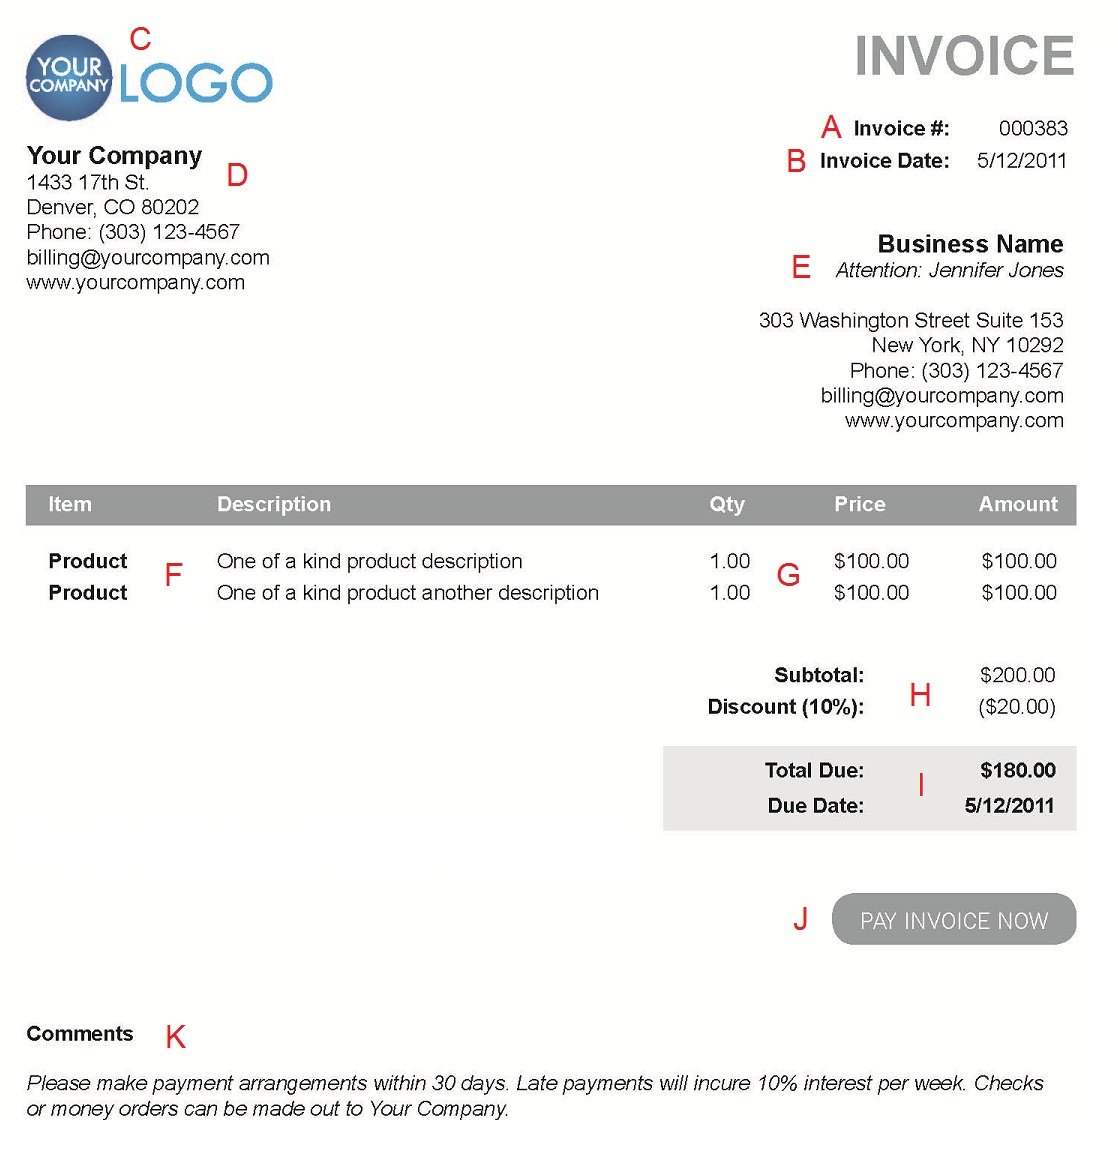 Centralasianshepherdus  Sweet The  Different Sections Of An Electronic Payment Invoice With Fair A  With Breathtaking Free New Car Invoice Prices Also Credit Card Invoice In Addition Business Invoices Free And What Is The Difference Between Msrp And Invoice As Well As Invoice No Additionally Art Invoice From Paysimplecom With Centralasianshepherdus  Fair The  Different Sections Of An Electronic Payment Invoice With Breathtaking A  And Sweet Free New Car Invoice Prices Also Credit Card Invoice In Addition Business Invoices Free From Paysimplecom